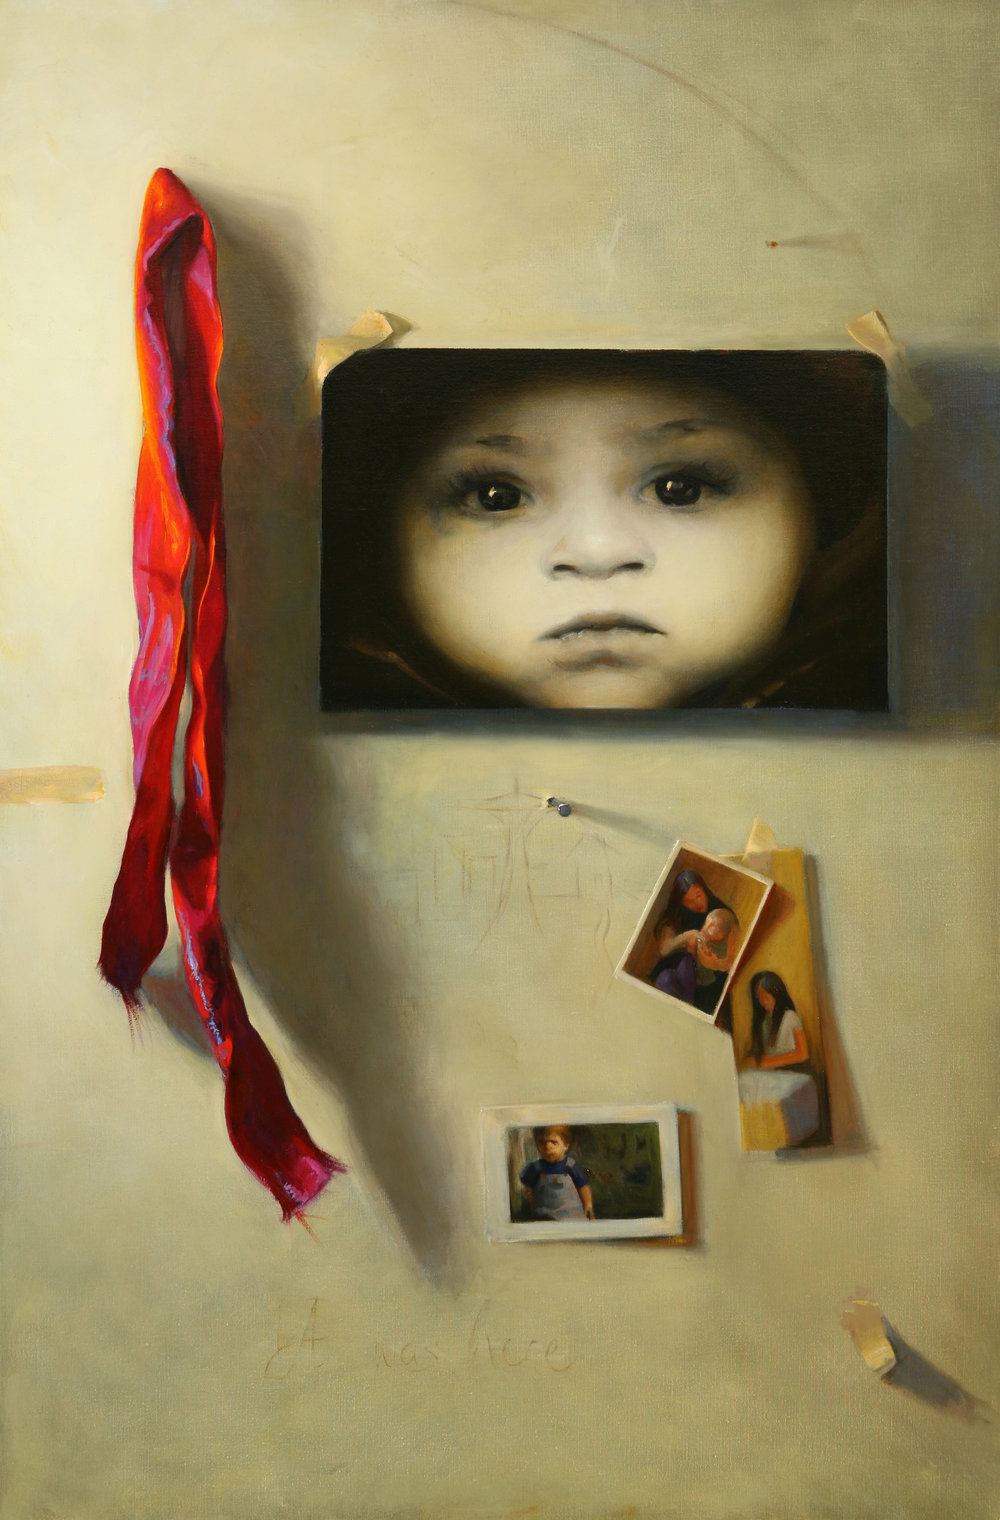 Juliette Aristides_Biography_36x26%22_Oil on Linen_2007.jpg